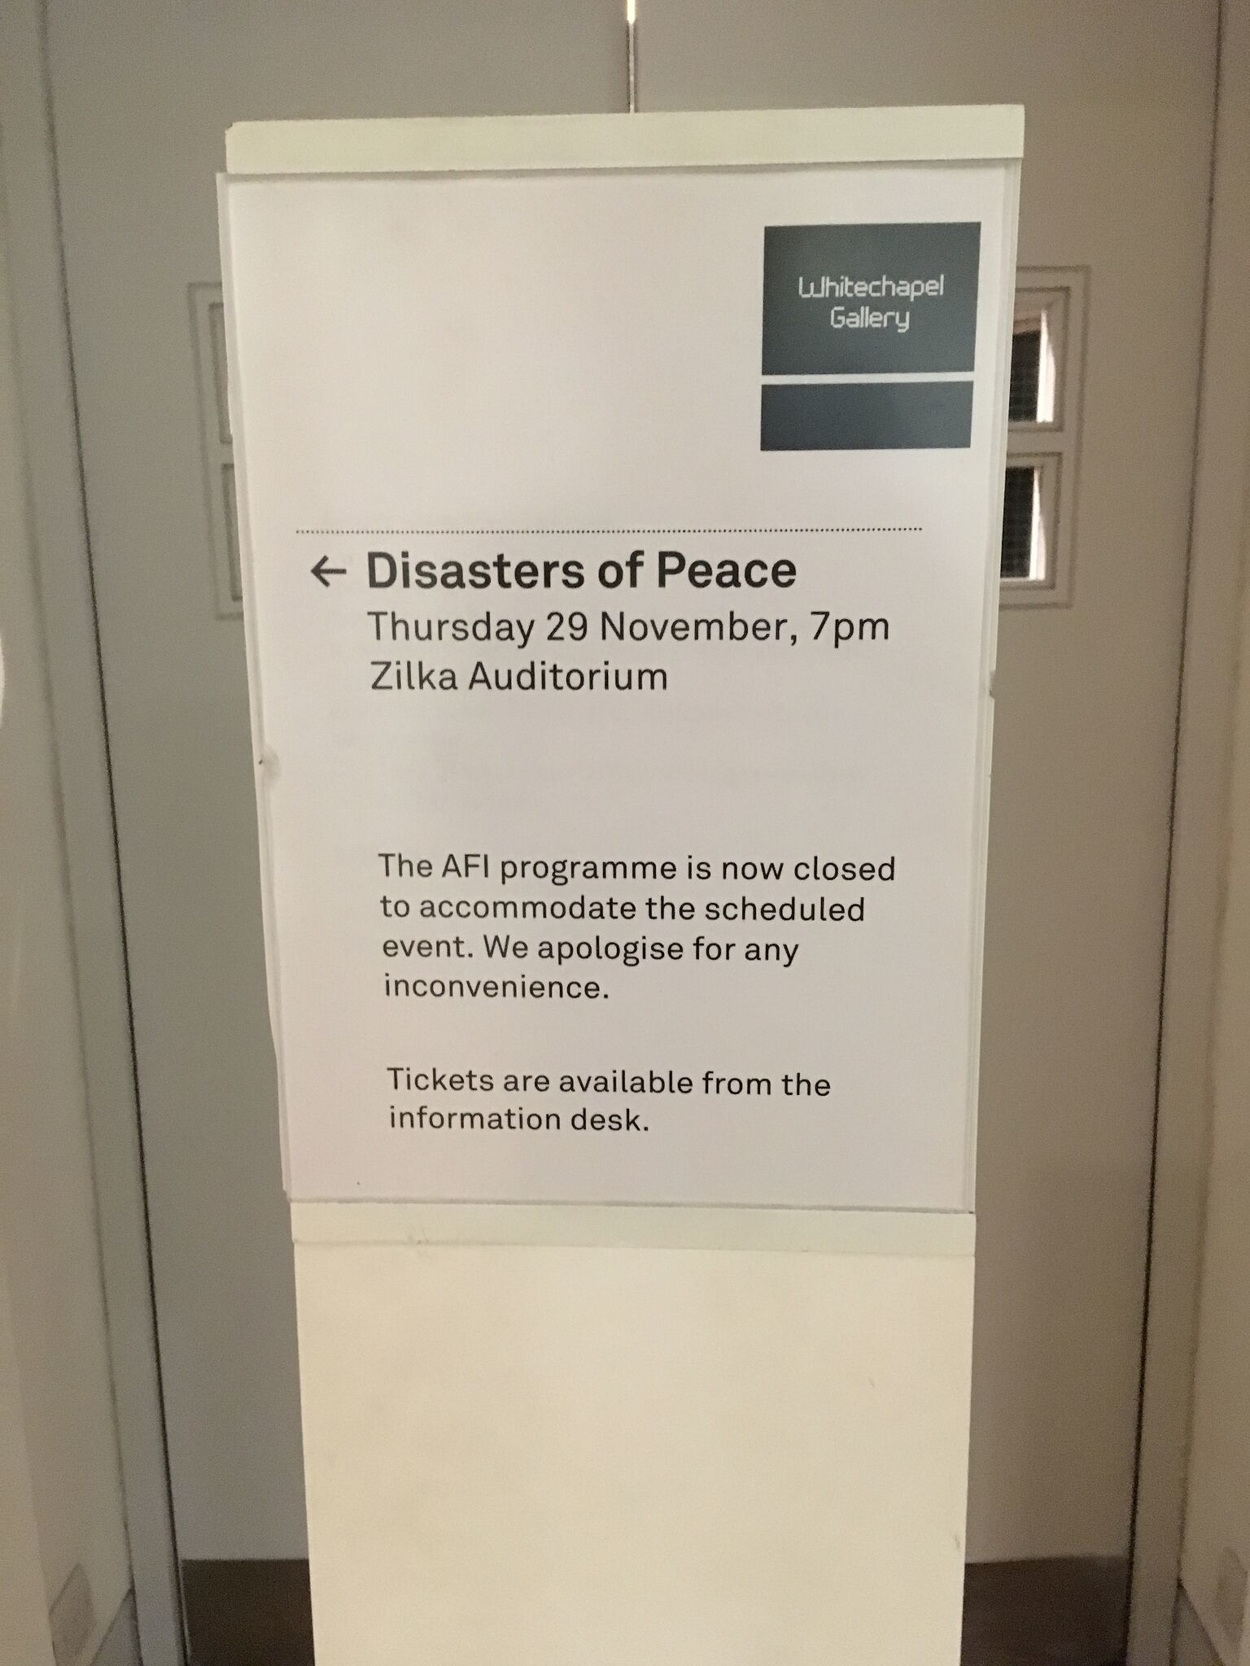 Sold out show of Disasters of Peace vol.6 at Whitechapel Gallery, London. Photo by Zula Ra